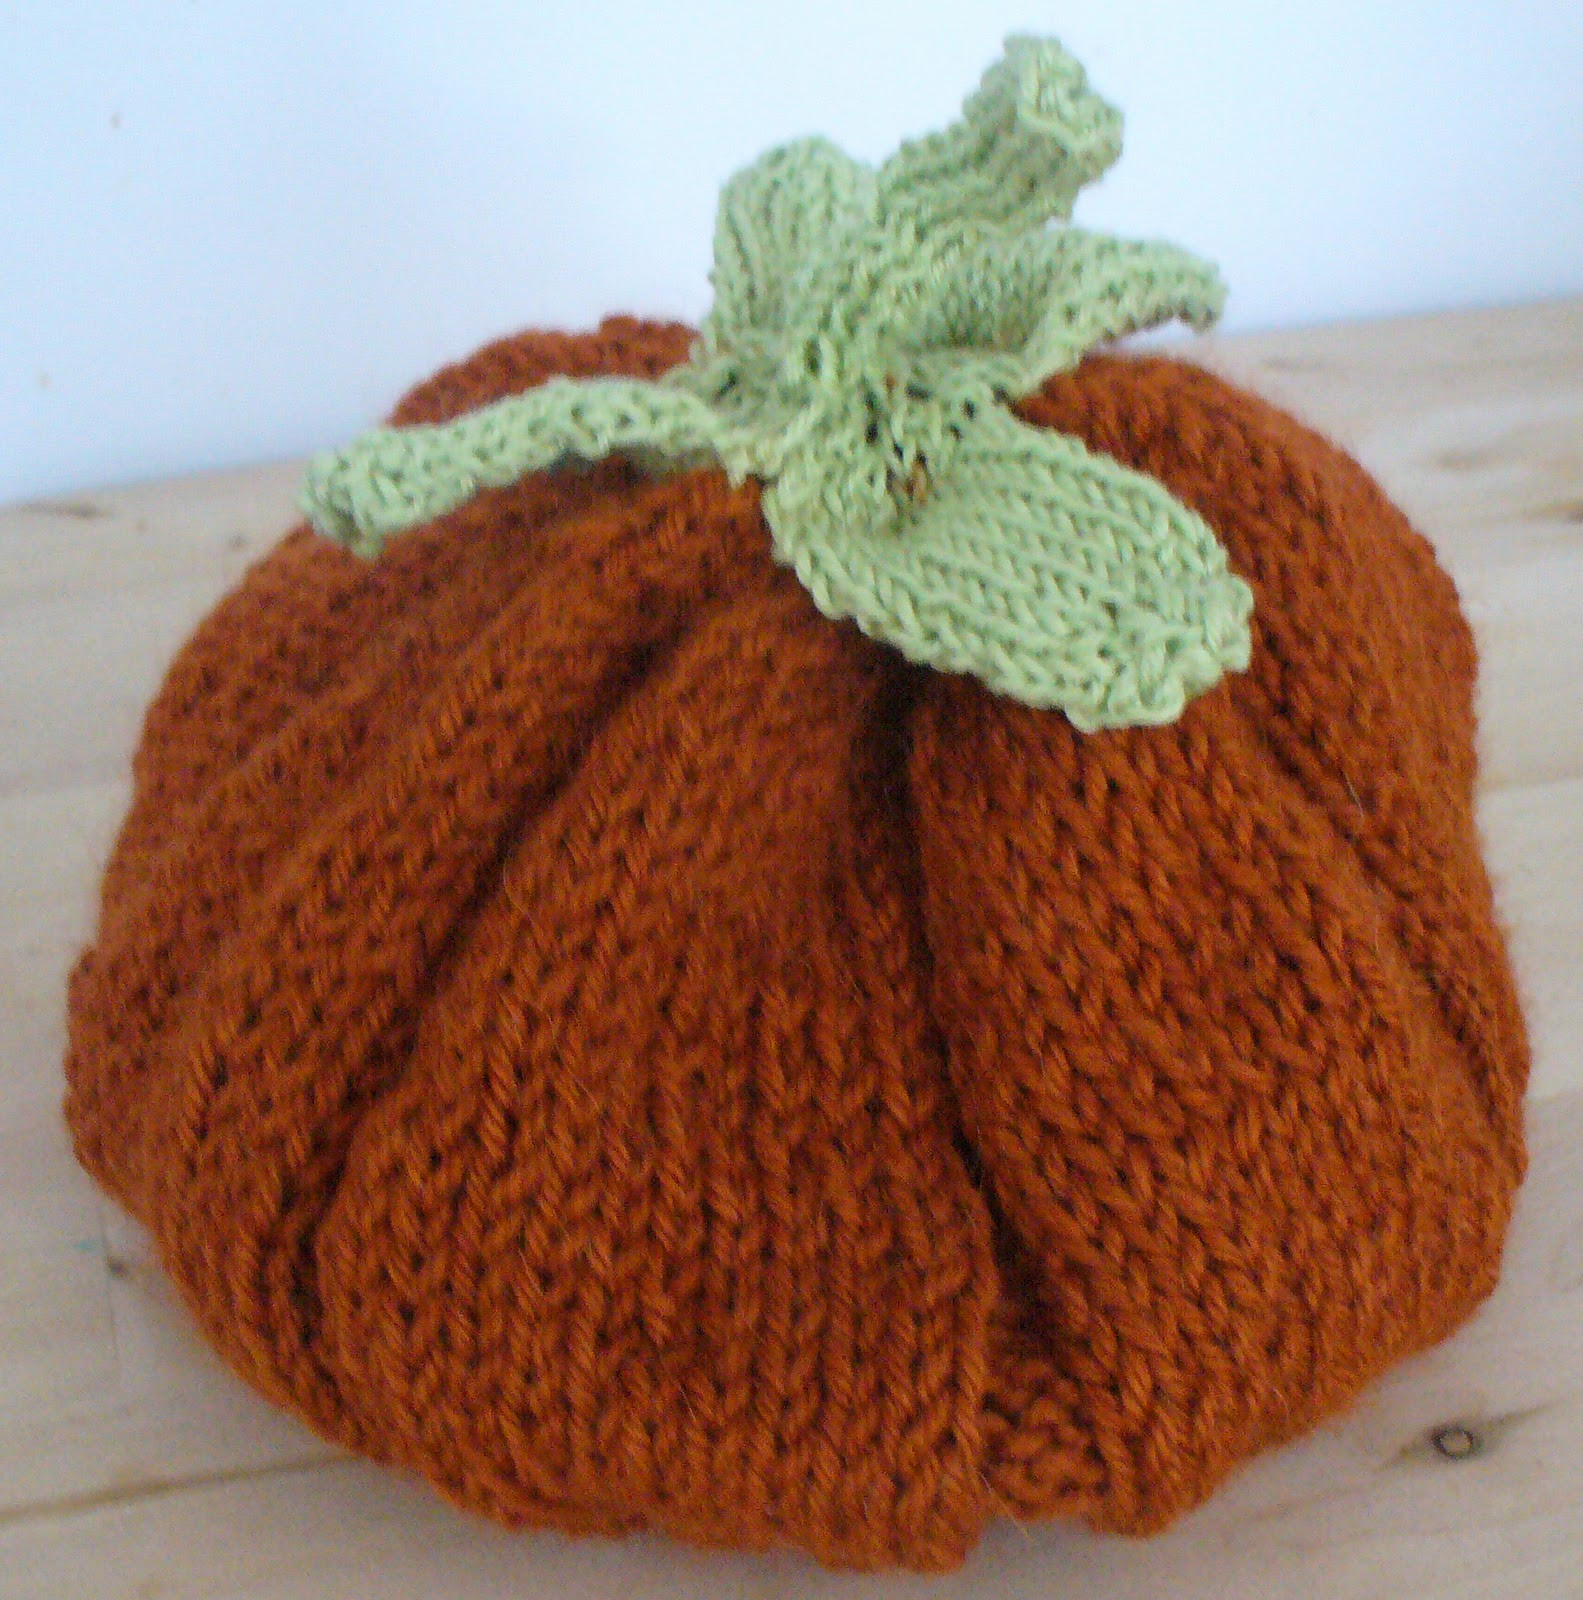 Inspirational the Feisty Redhead Knitted Pumpkin Hat Knitted Pumpkin Hat Of Marvelous 40 Ideas Knitted Pumpkin Hat